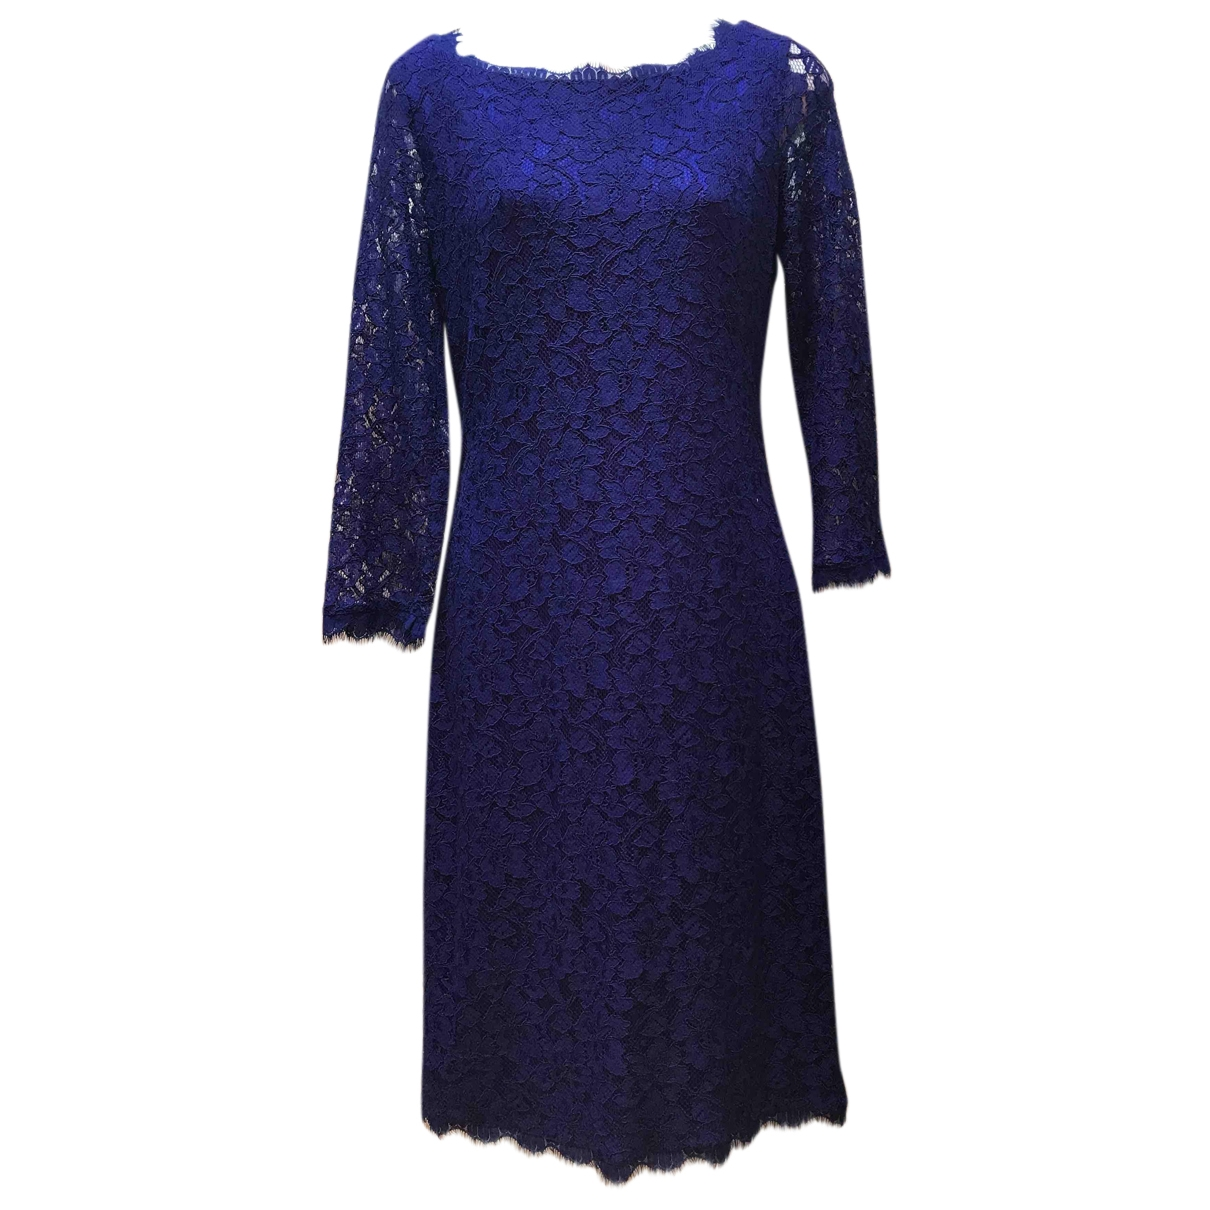 Diane Von Furstenberg \N Blue Lace dress for Women 6 US